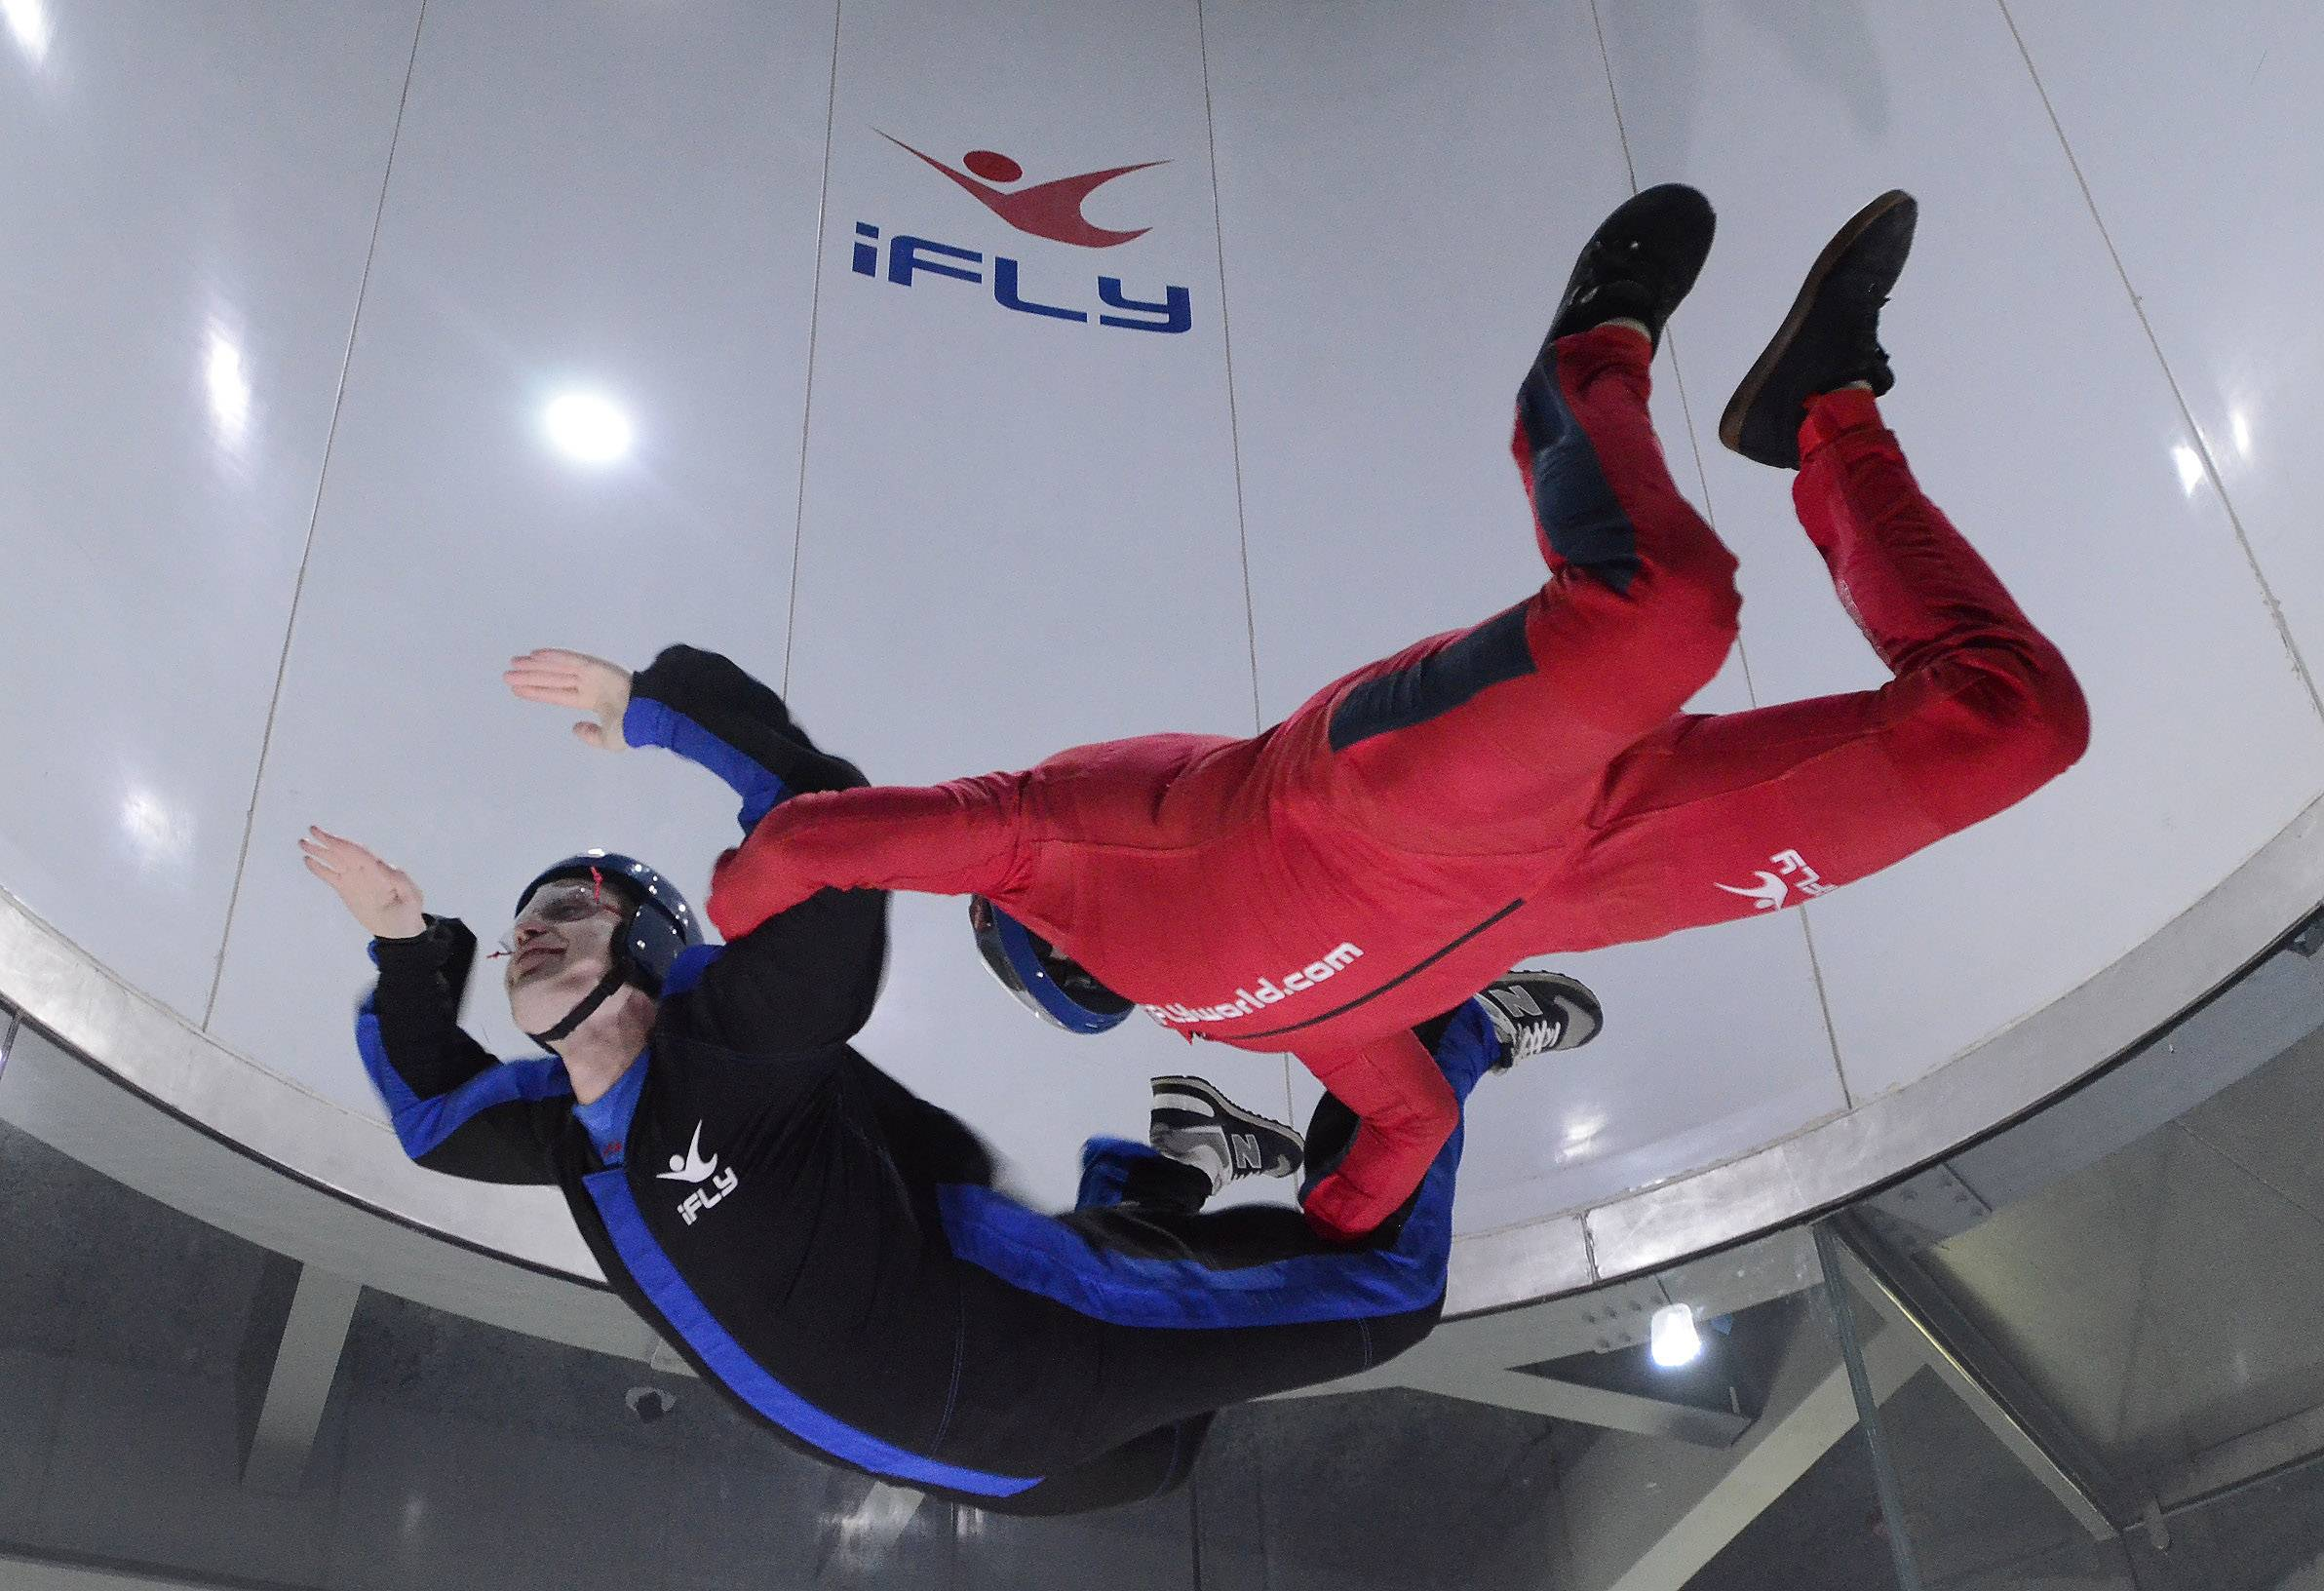 Daily Herald reporter Chris Placek is guided by instructor Gabriel Roth at the new iFLY indoor sky diving experience in Rosemont's entertainment district.